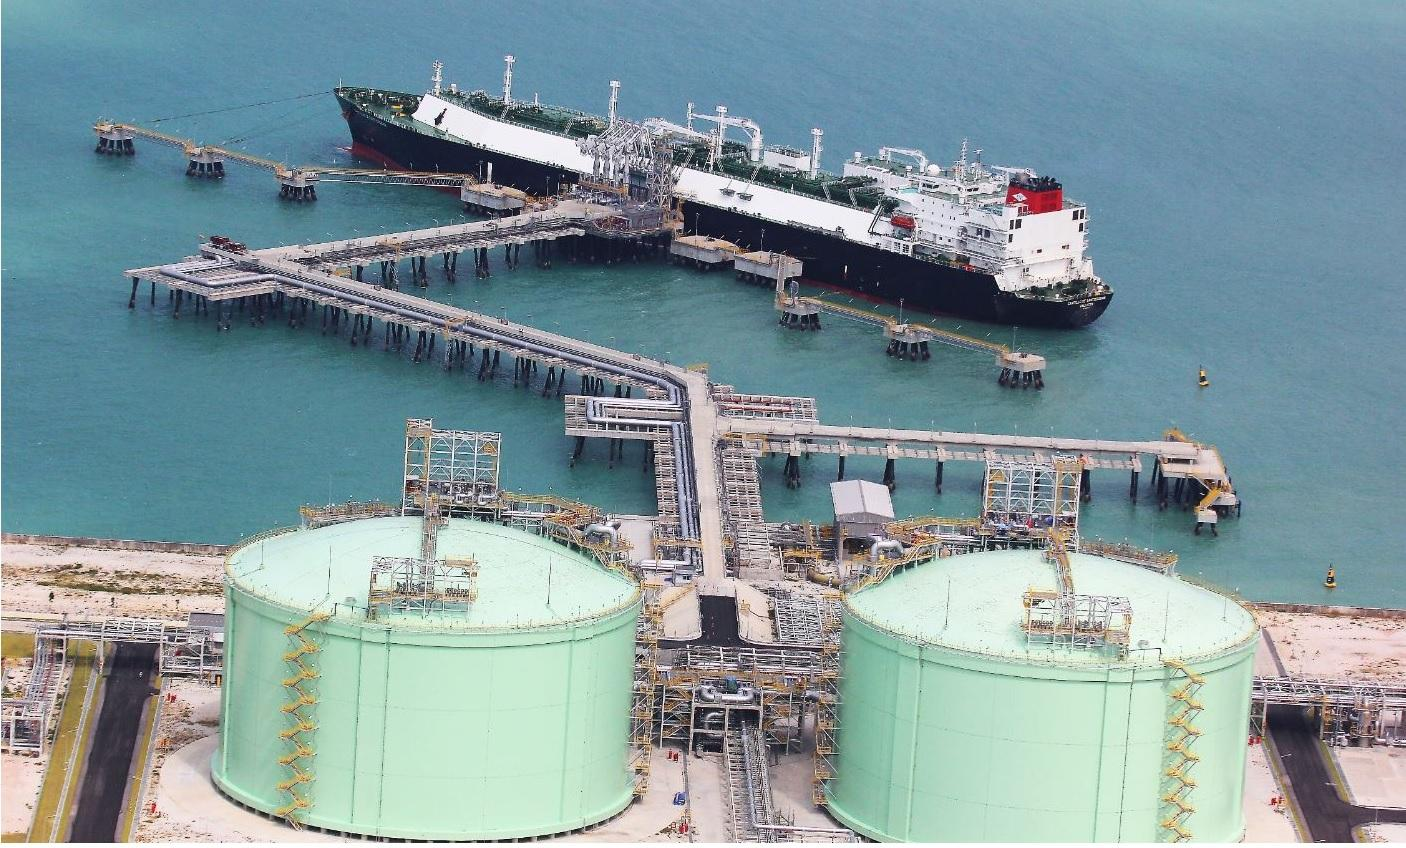 PTT's LNG receiving terminal, located in Map Ta Phut, has storage capacity of 11.5 million tonnes a year.